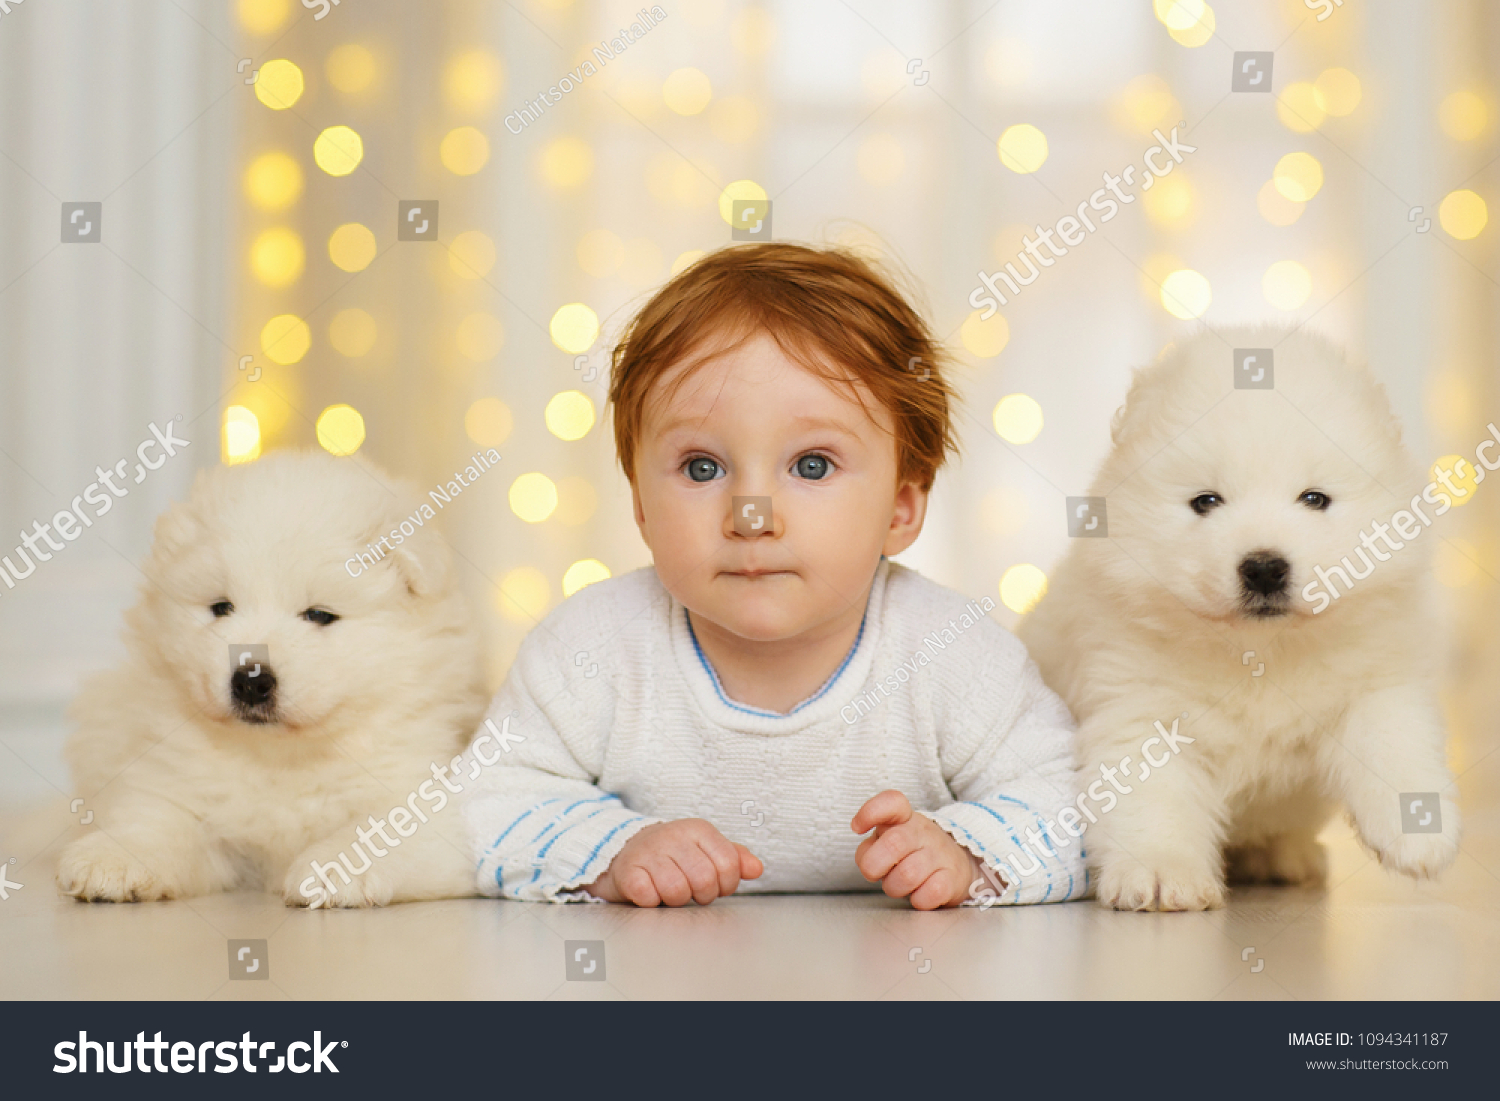 Baby Boy Two Samoyed Puppies Stock Photo Edit Now 1094341187